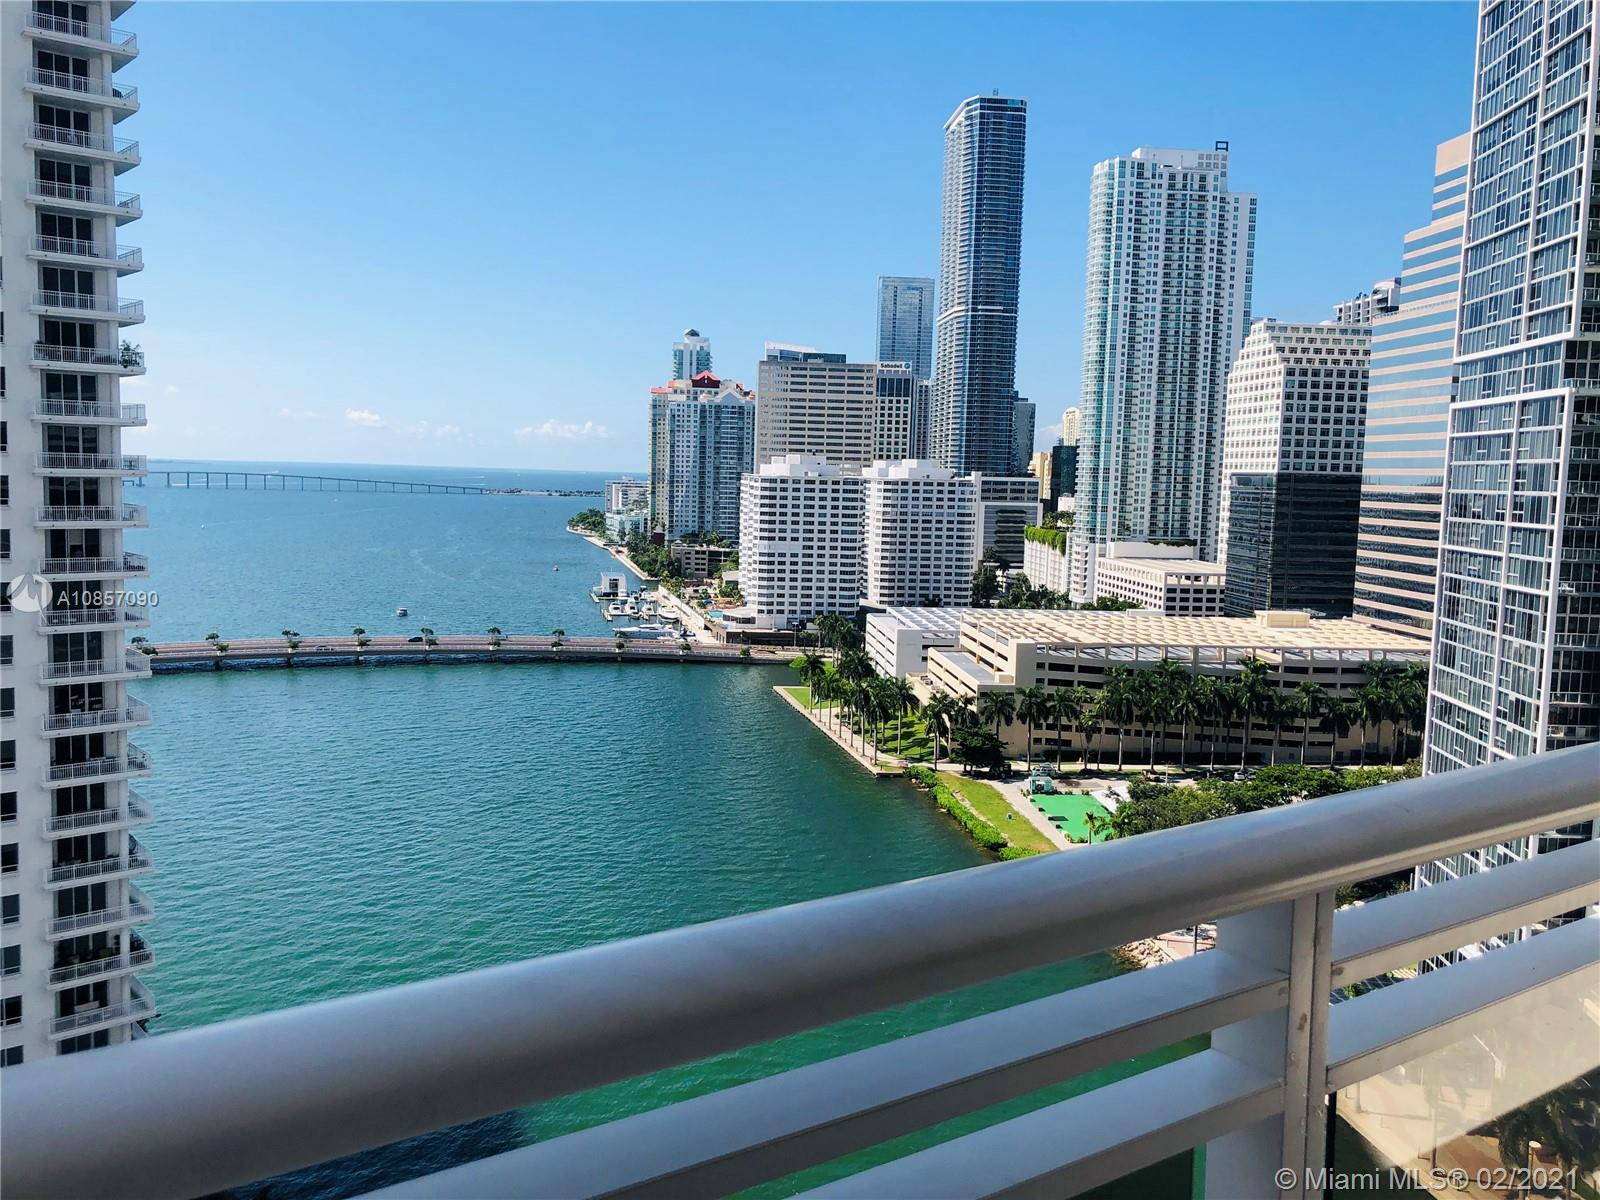 Brickell Key Miami is a very unique  island community centrally located in Brickell. This elegant residence shows an unobstructed water and  Downtown Miami views. This unit futures marble and wood floors, spacious kitchen with wood cabinets and stainless still appliances, two balconies and the finest walls finish. 